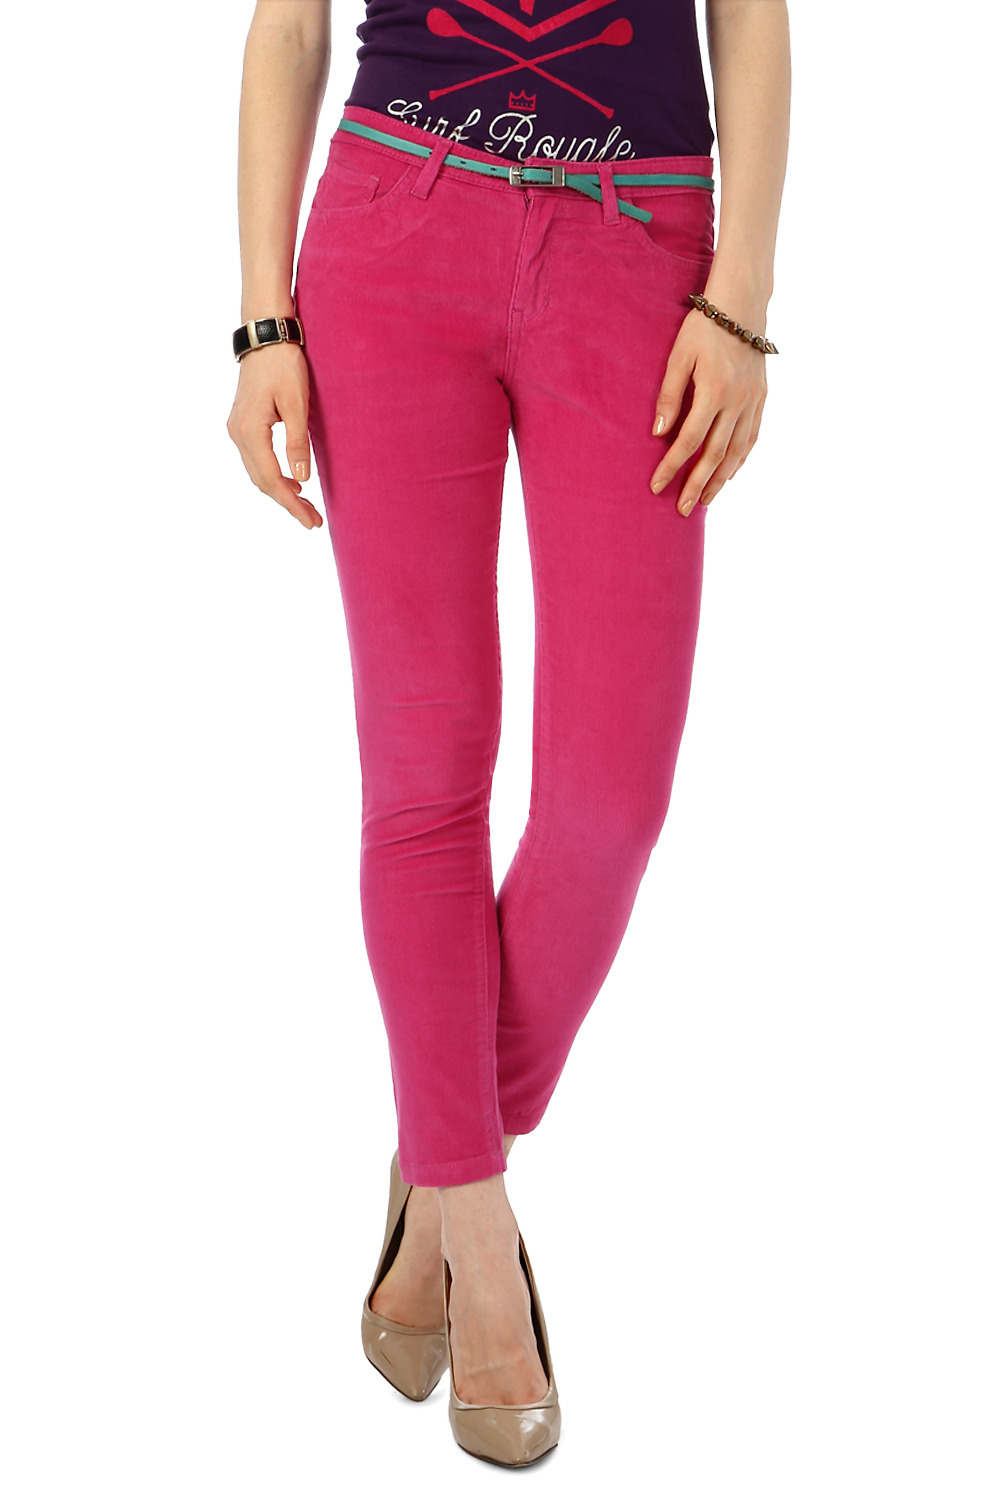 Simple Corduroy Pants Manufacturers And Suppliers